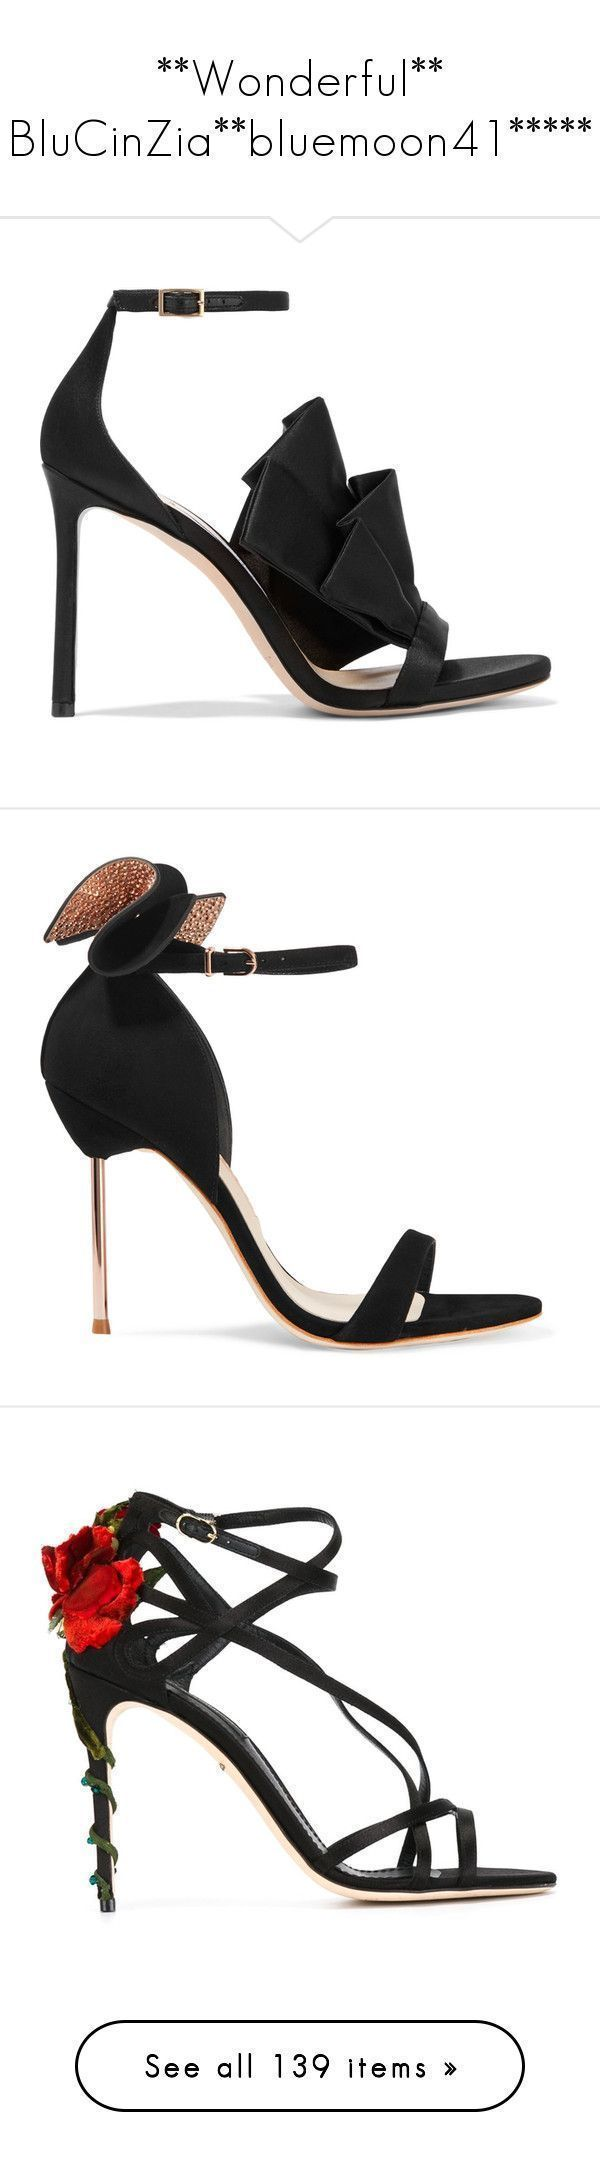 """**Wonderful** BluCinZia**bluemoon41*****"" by bluemoon ❤ liked on Polyvore featuring shoes, sandals, heels, jimmy choo, sapatos, black, strappy sandals, high heeled footwear, black strappy sandals and heels stilettos #jimmychooheelsblack"